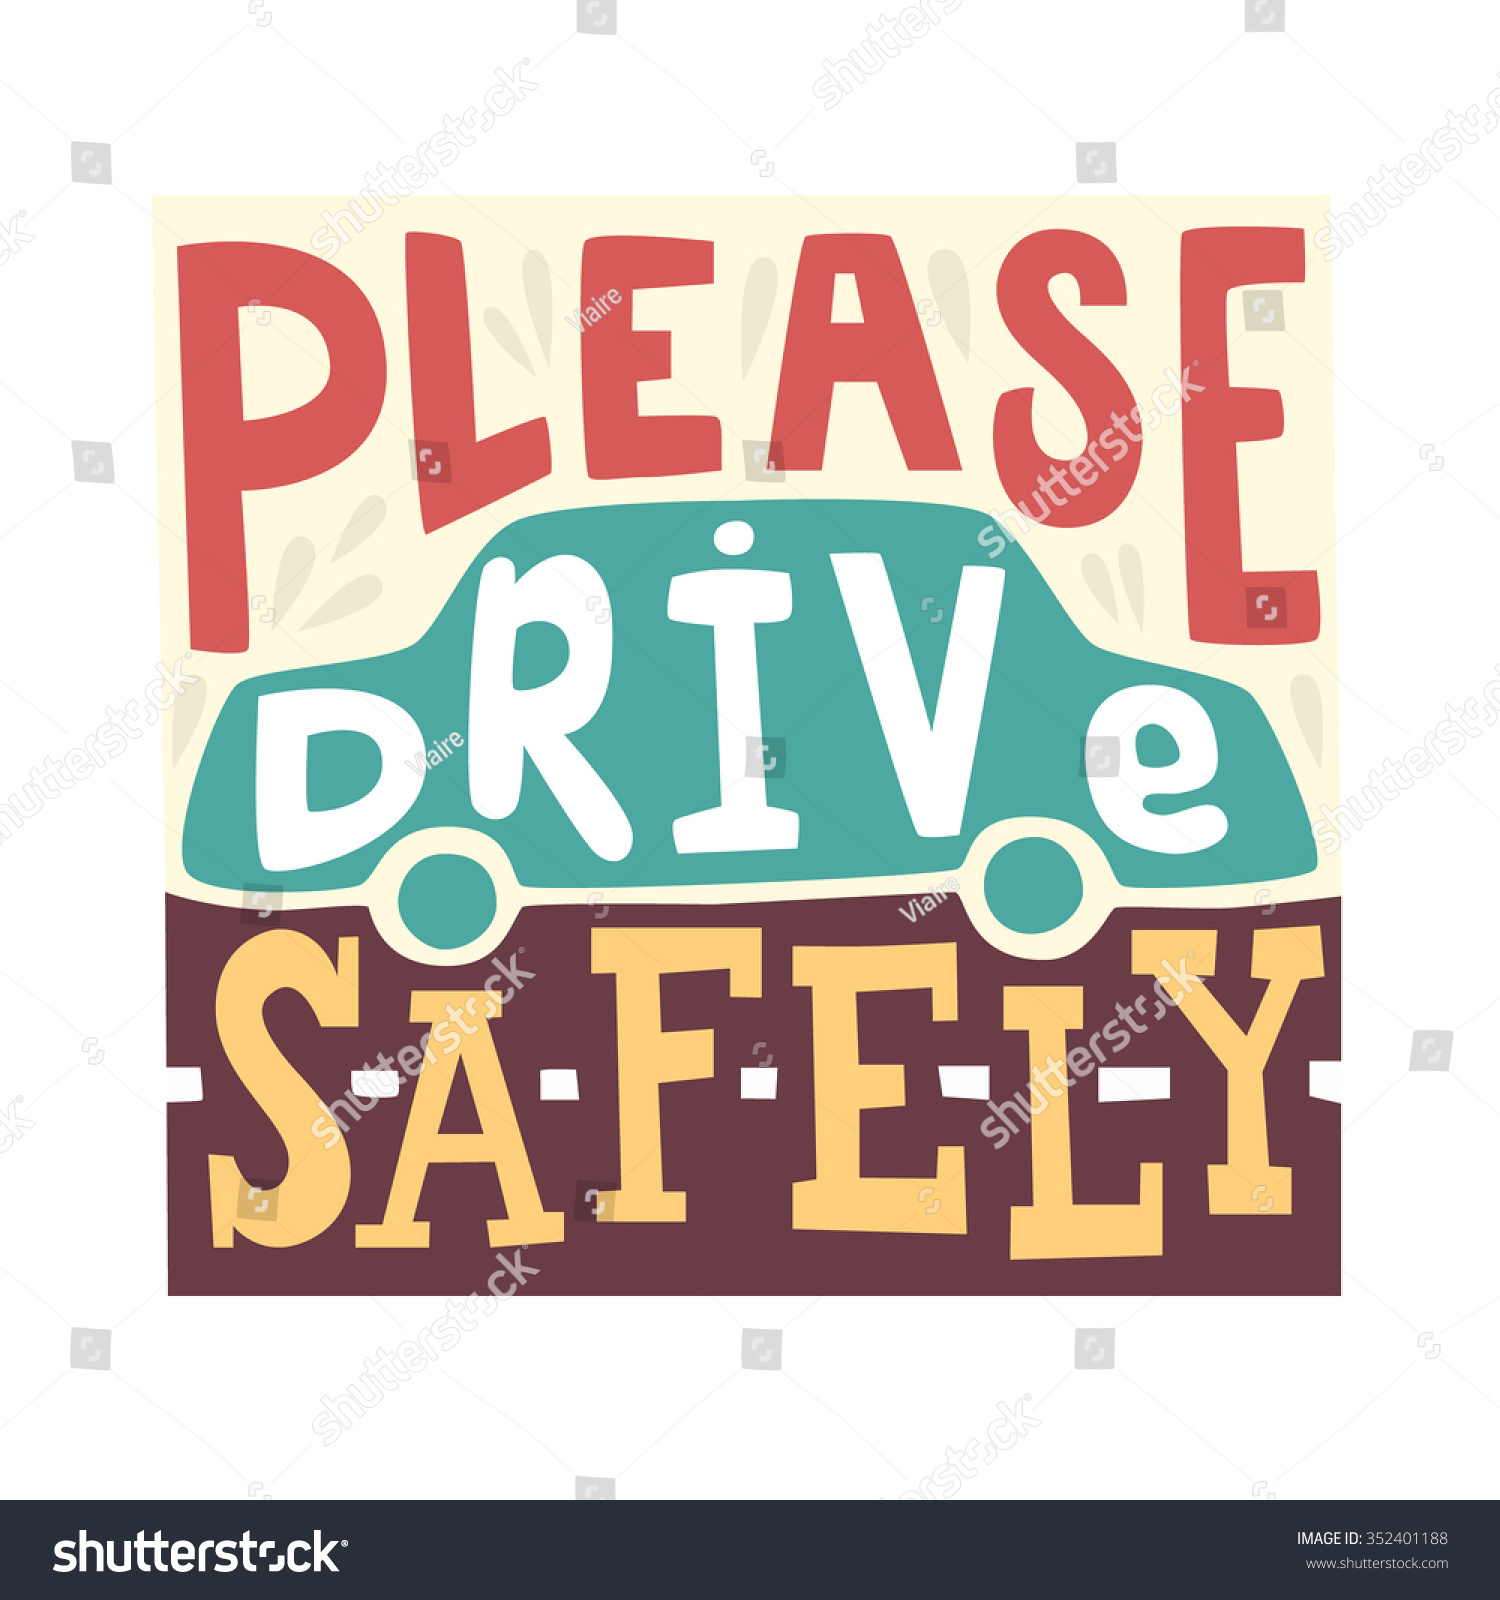 Image result for drive safely images